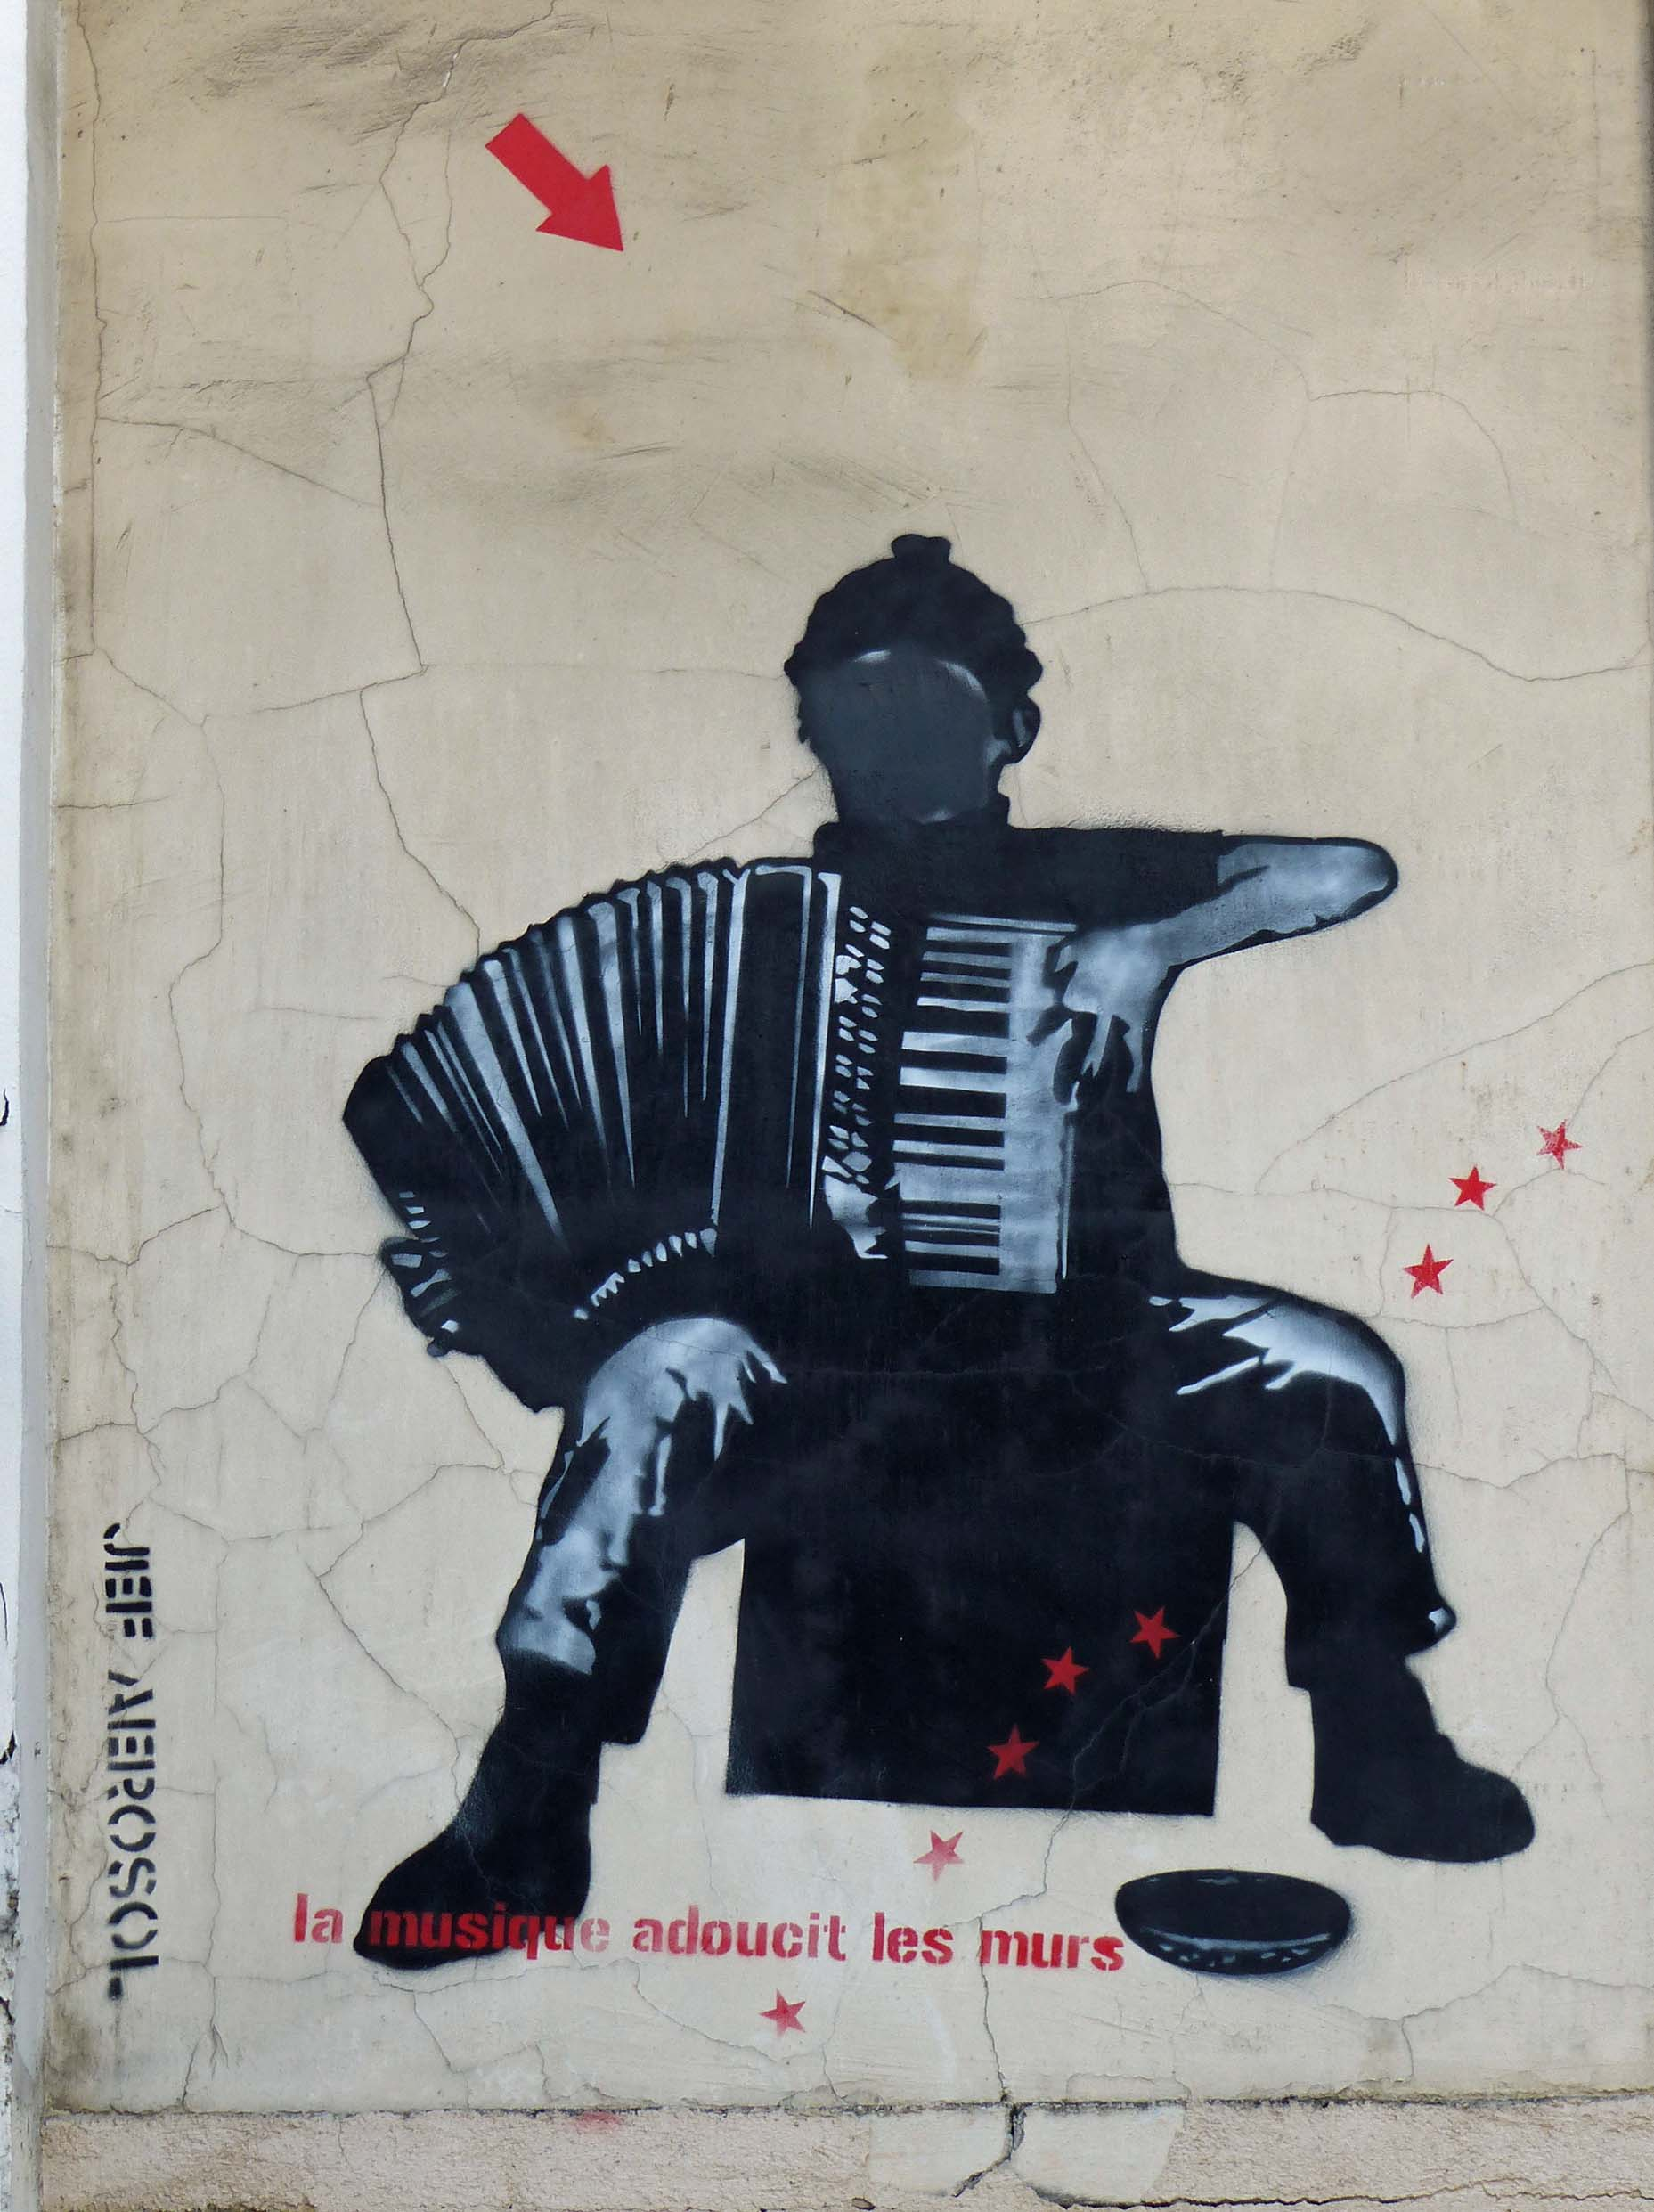 Painting of an accordion player with a blank face